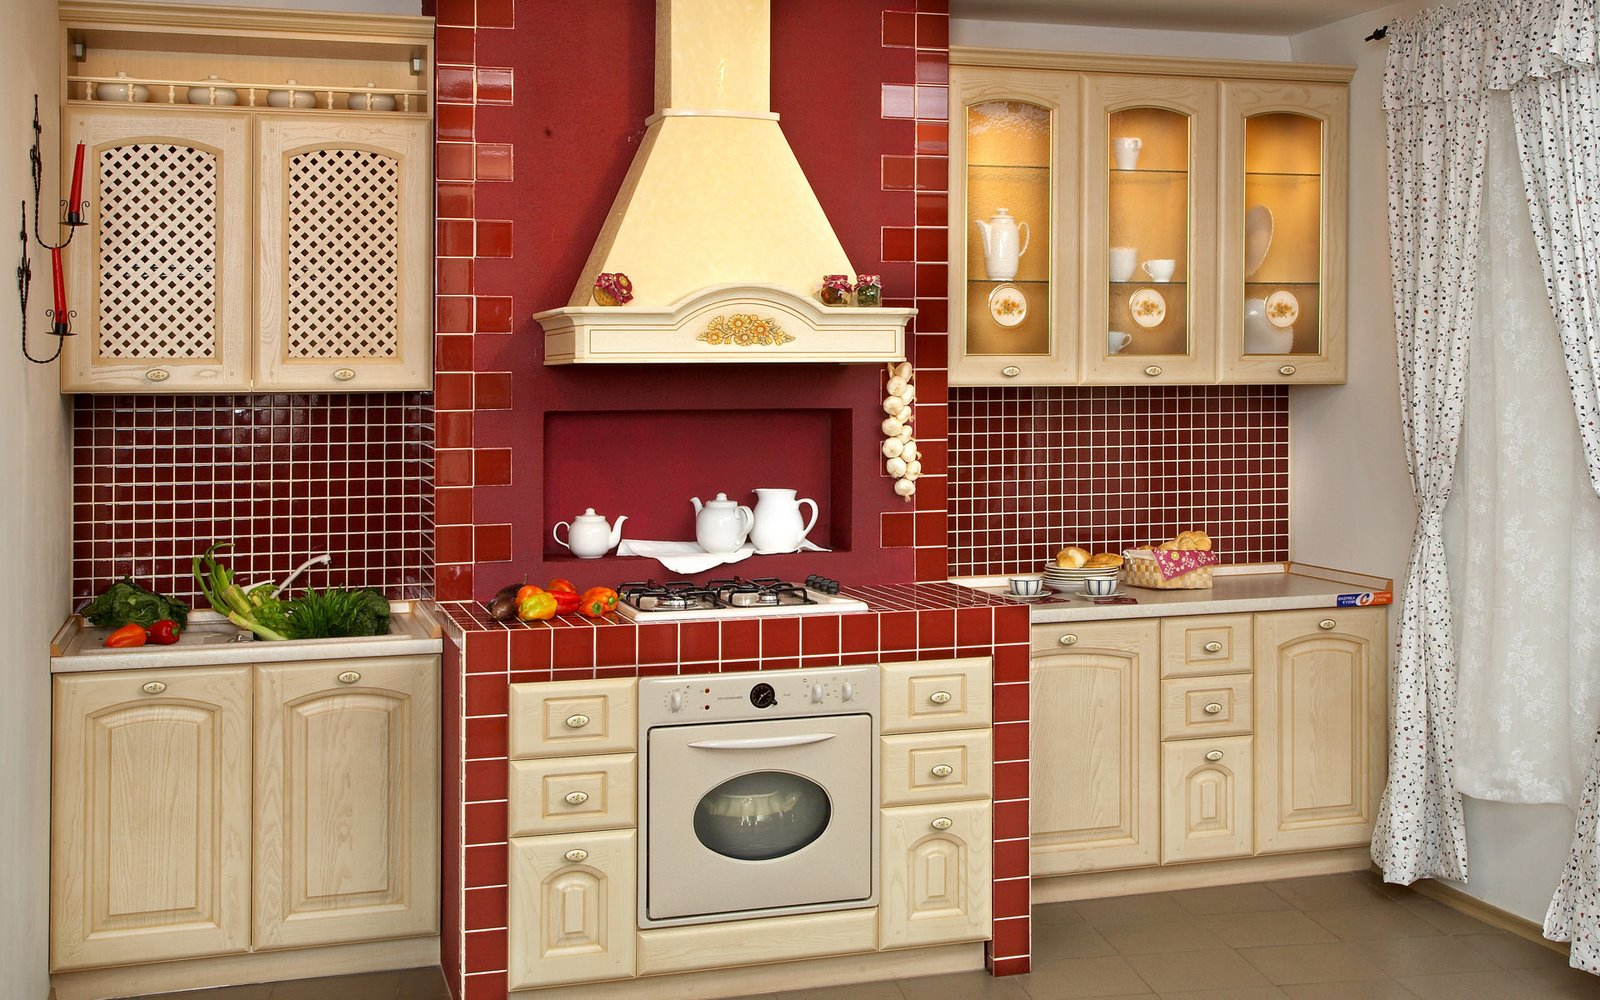 Modern kitchen designs in red interior decorating home design sweet home - Country kitchen design ...